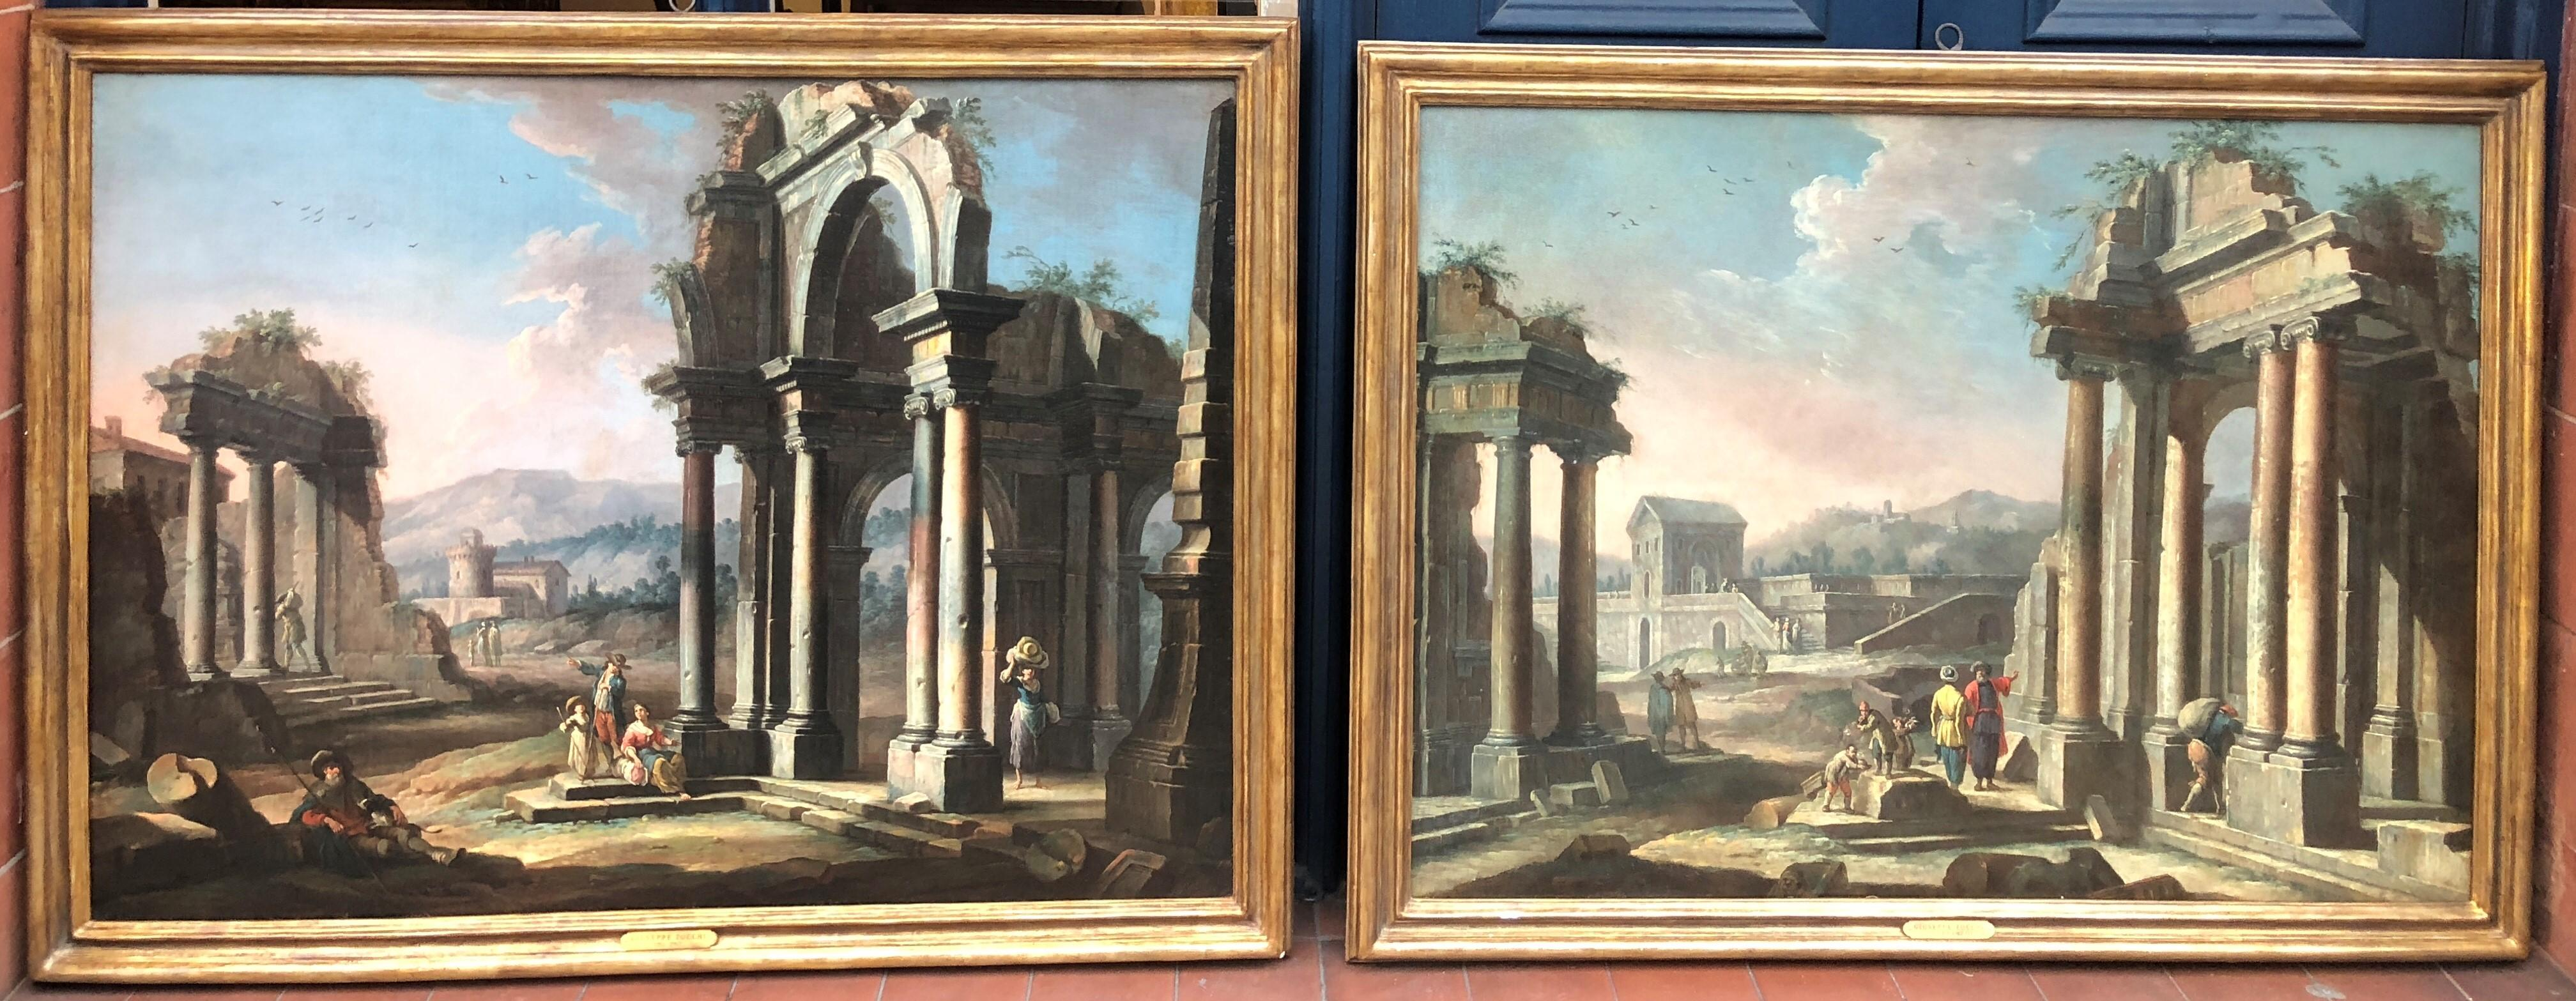 Serene C18th Pair of Architectural Capricci Oil Paintings of Classical Ruins